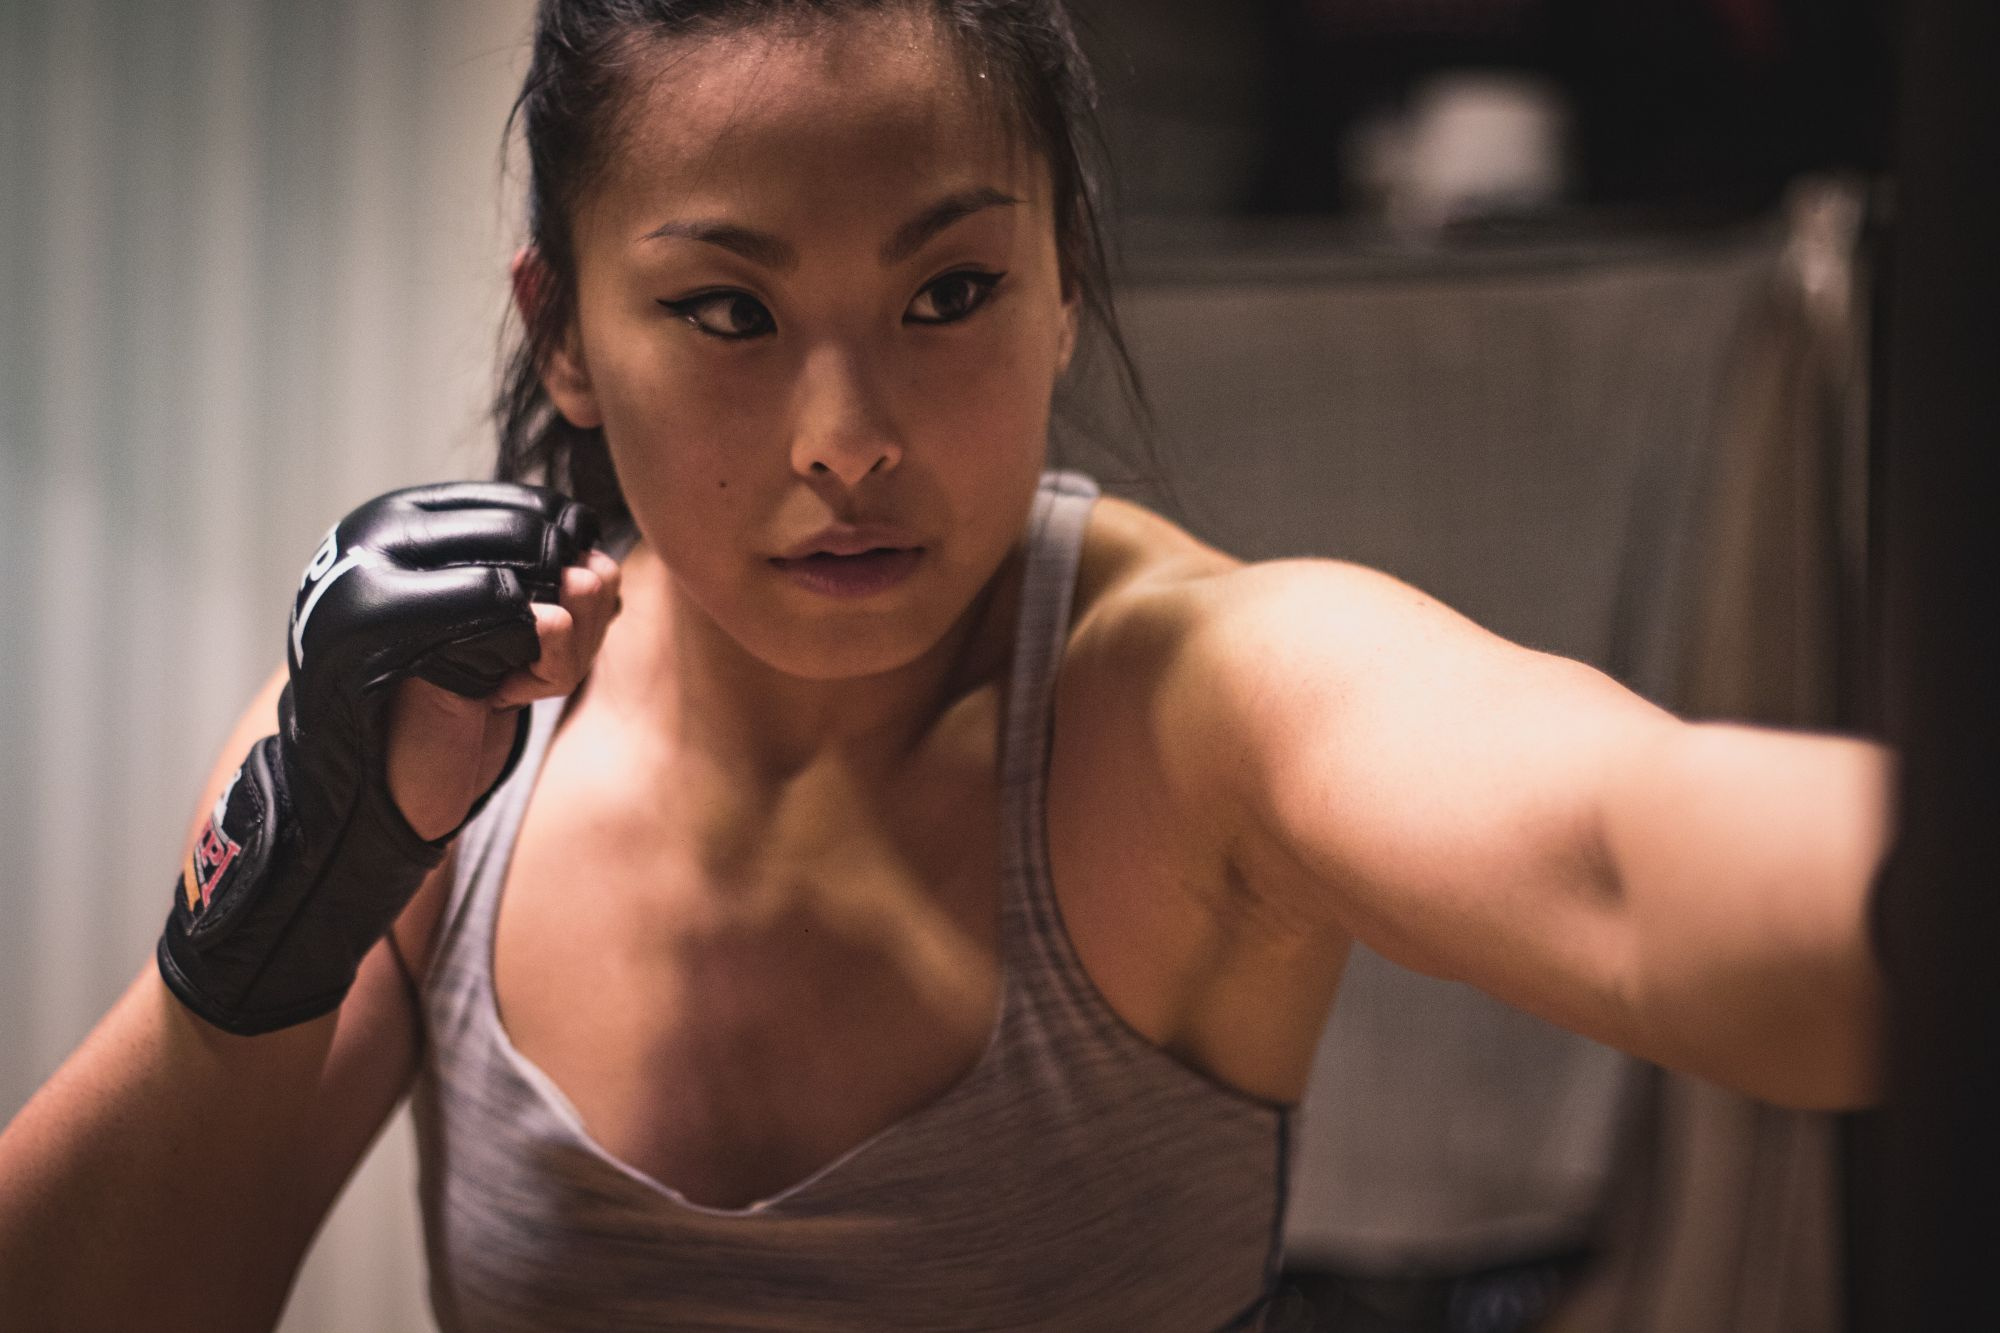 Trailblazing MMA Fighter Ramona Pascual On Overcoming Adversity And Inspiring Young Women In Martial Arts